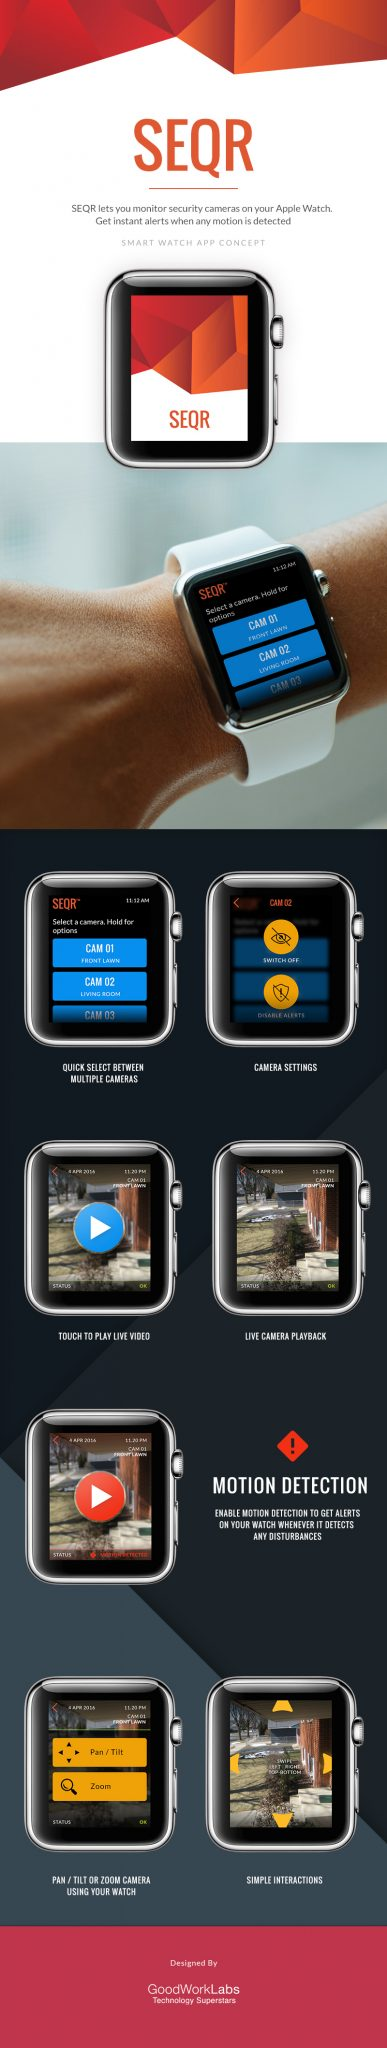 Apple Watch app design and development